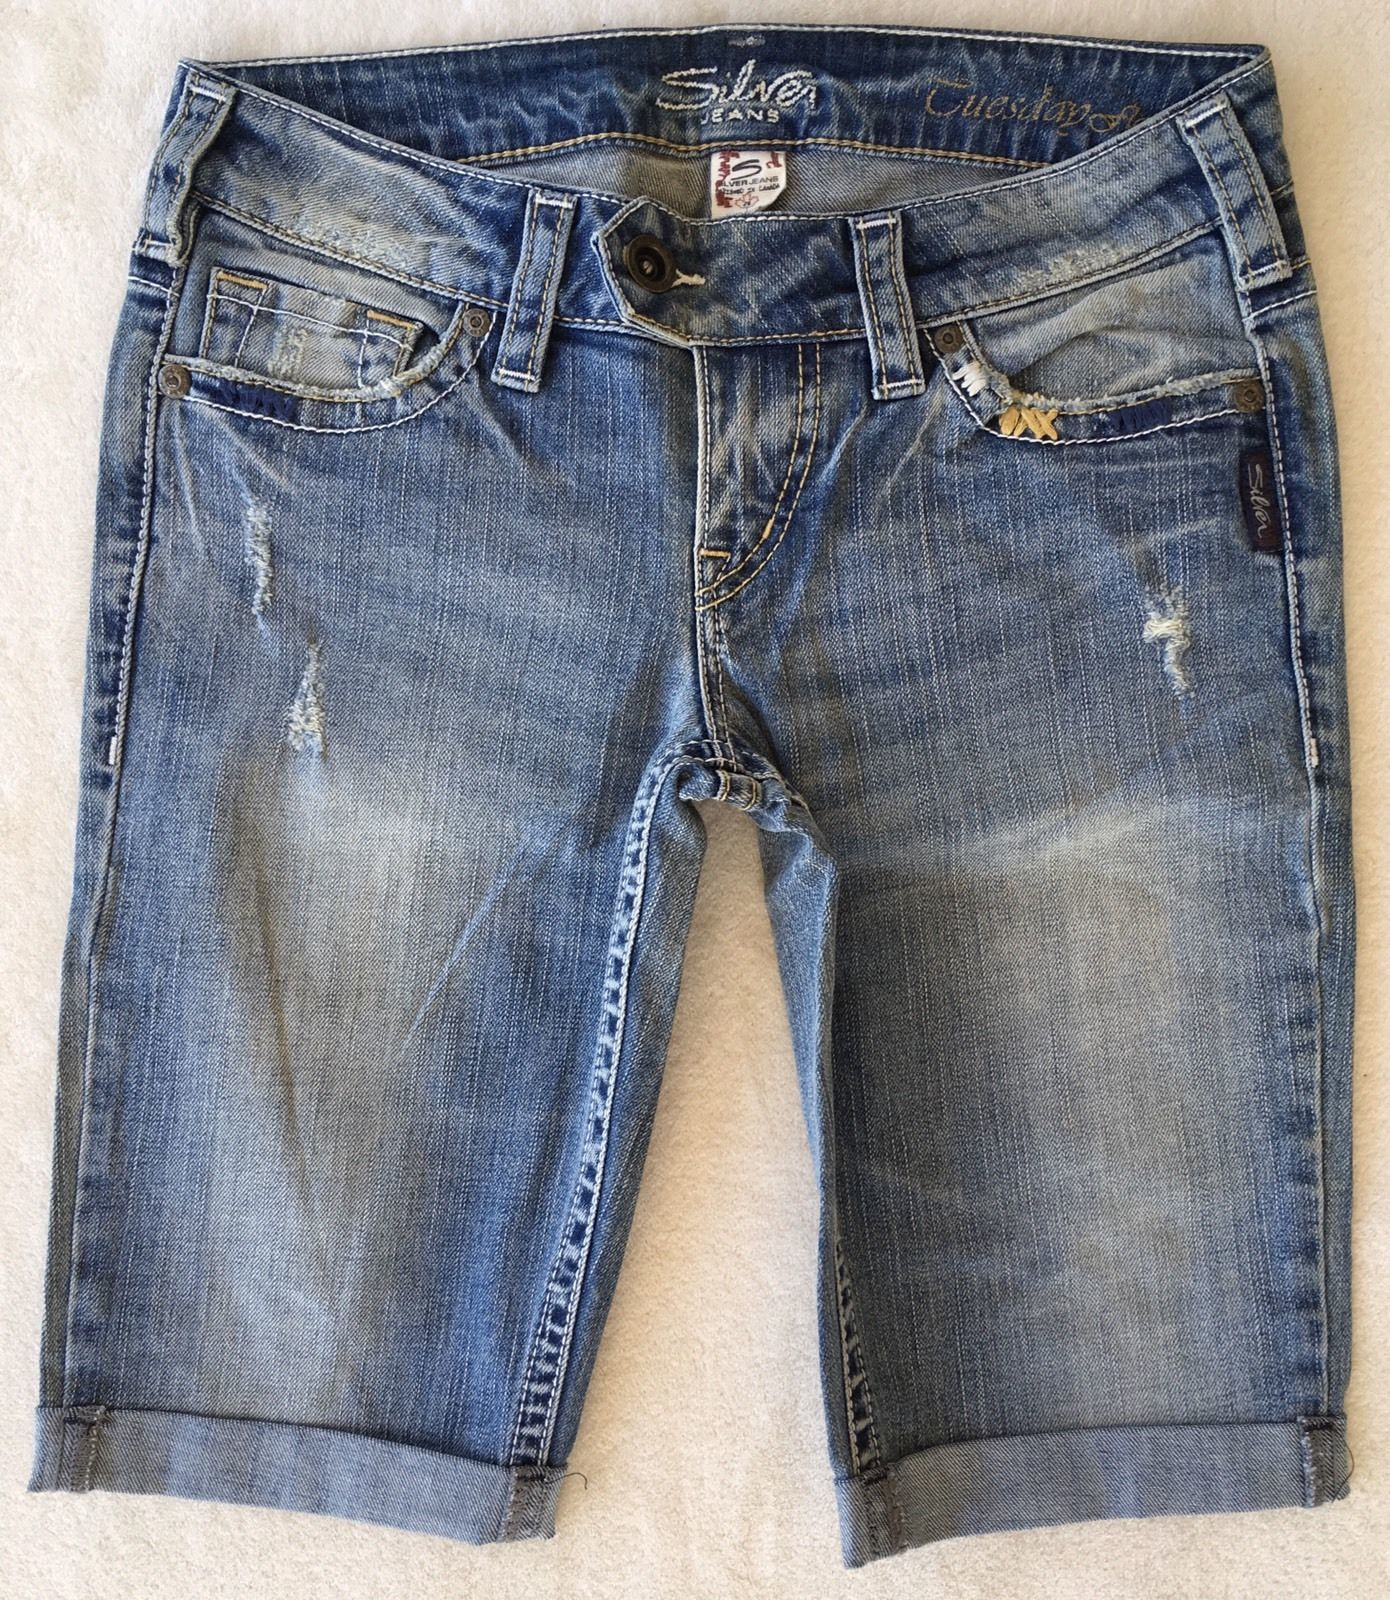 SILVER JEANS Sale Buckle Low Rise Tuesday Flap Denim Stretch Jean Mid Shorts 26